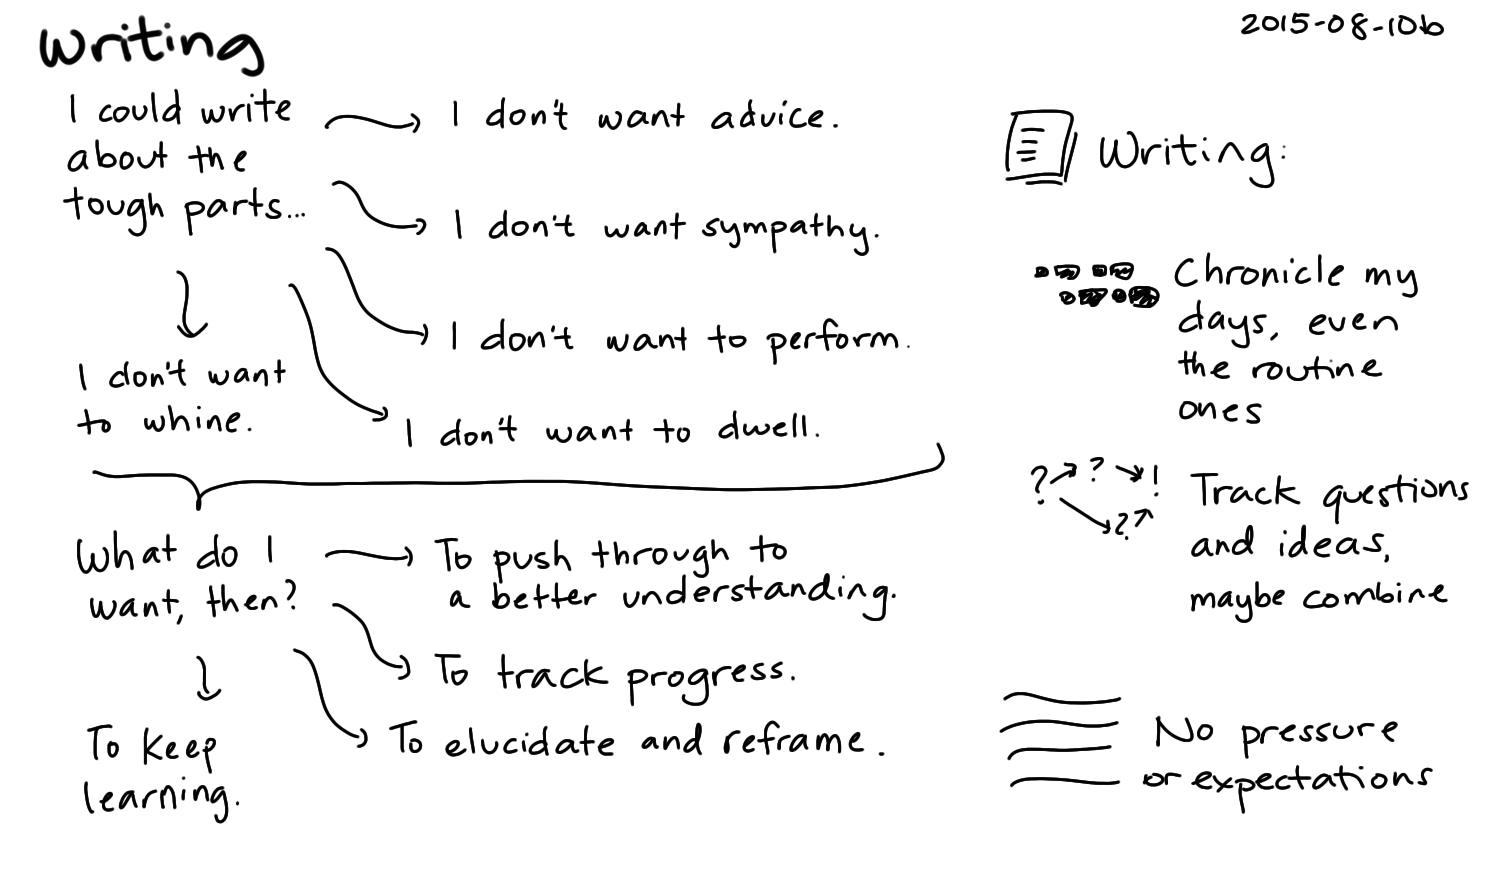 2015-08-10b Writing -- index card #writing.png